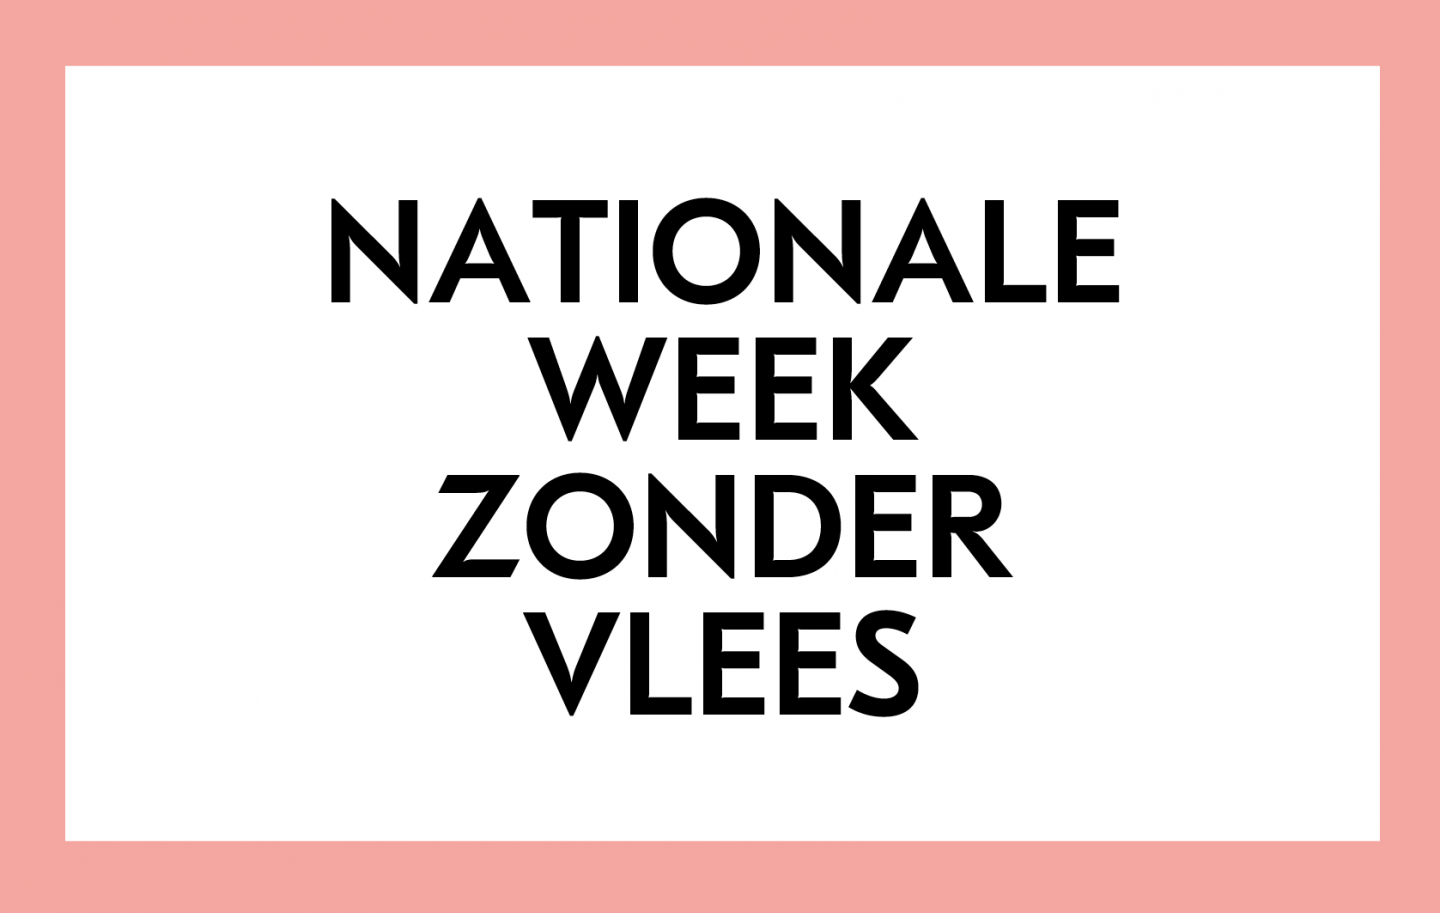 nationale week zonder vlees